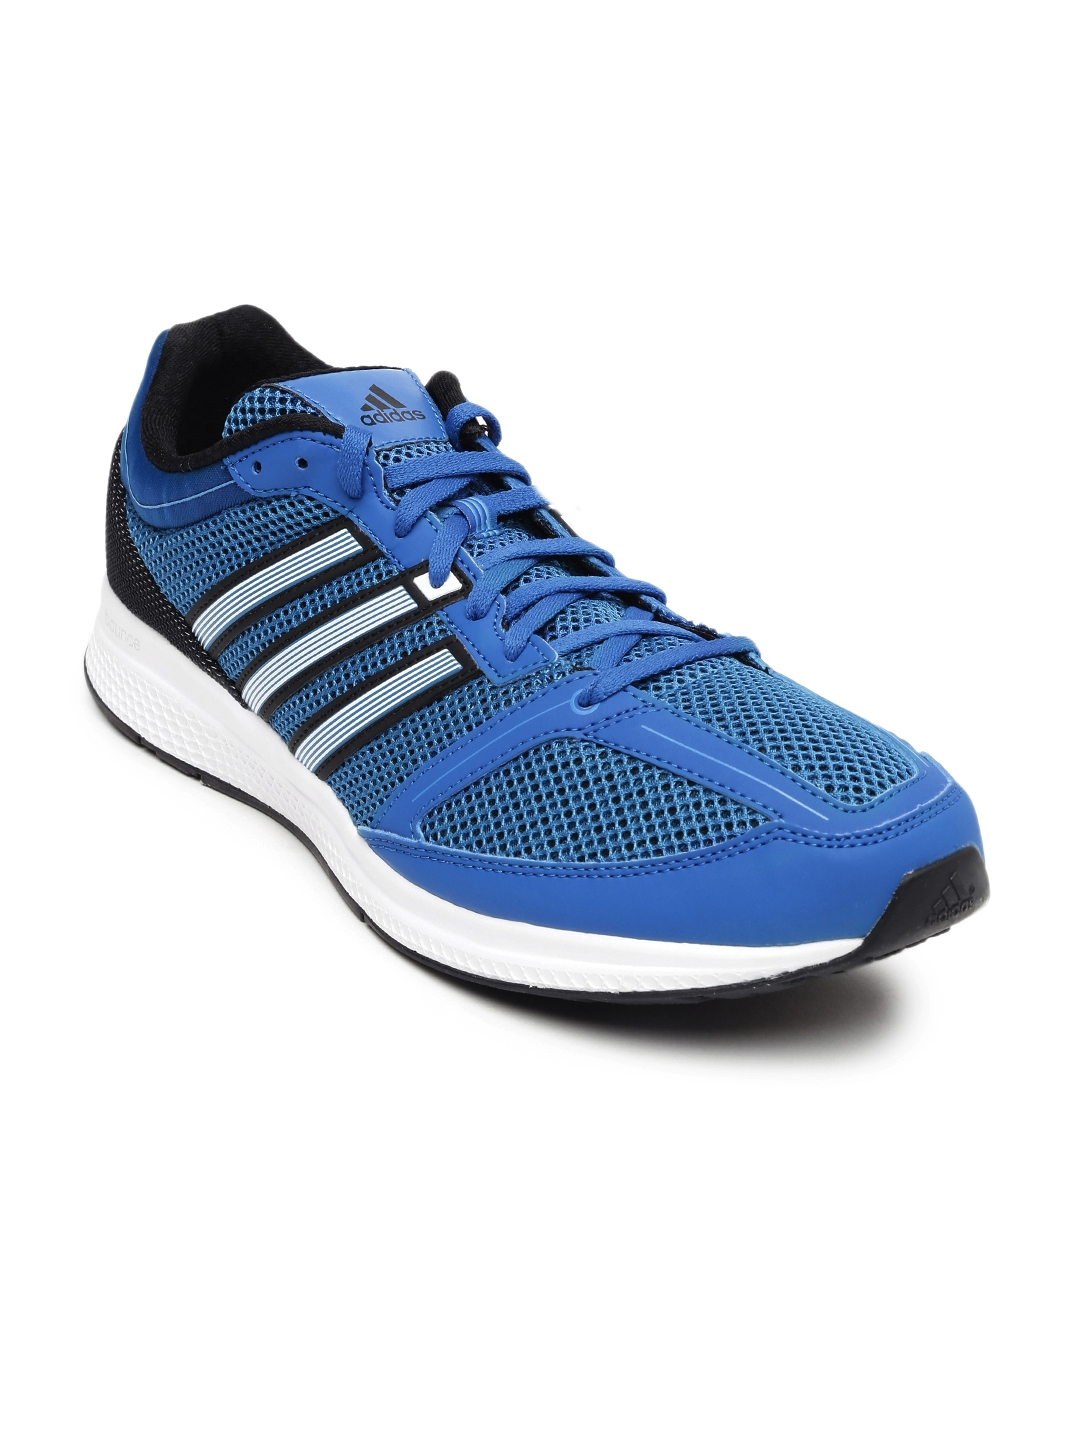 533c6c839 Buy ADIDAS Men Blue Mana RC Bounce Running Shoes - Sports Shoes for ...